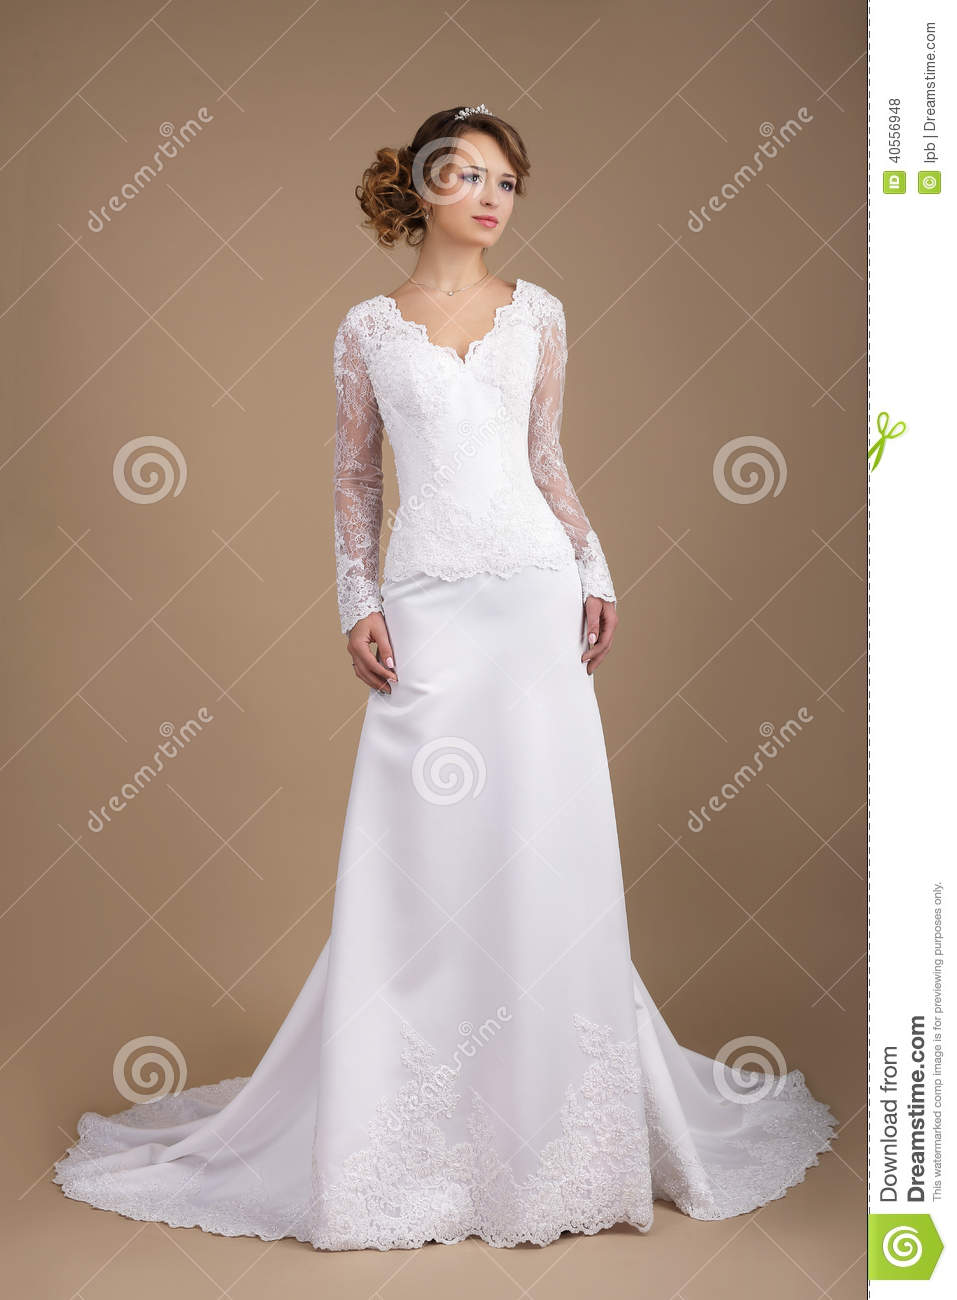 Graceful Young Bride In Wedding Dress Stock Photo